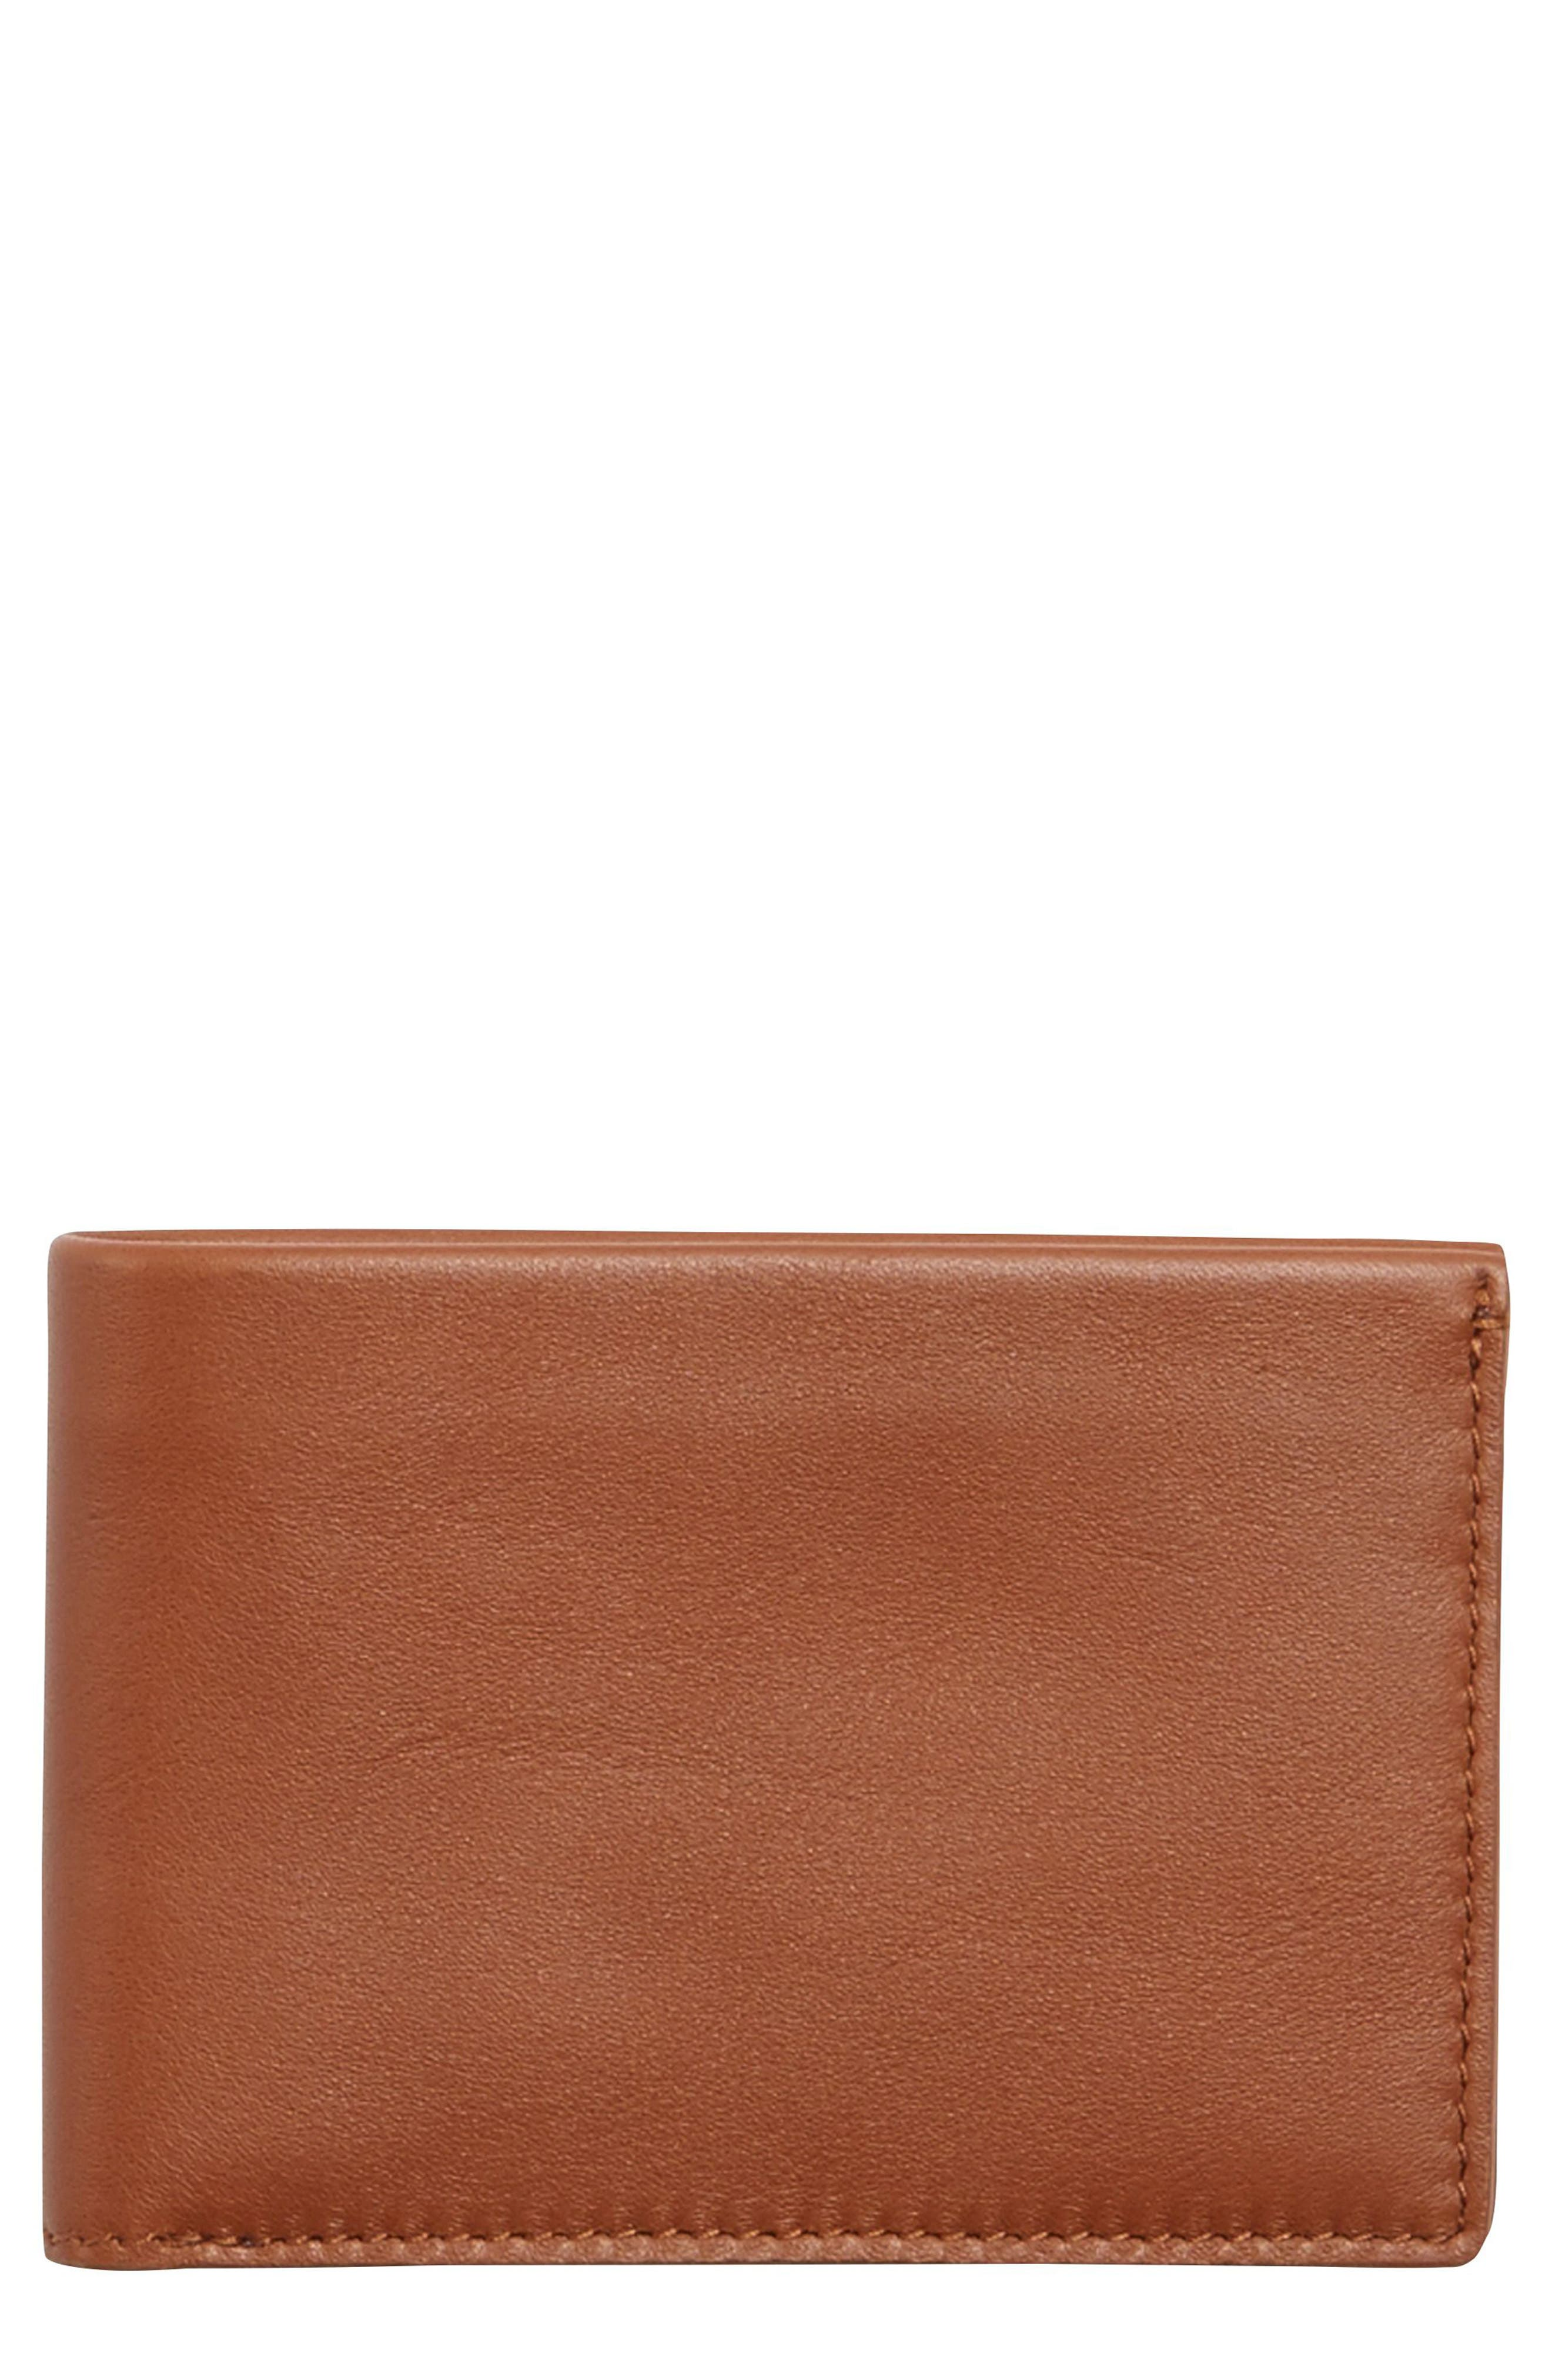 Leather Wallet,                             Main thumbnail 1, color,                             222